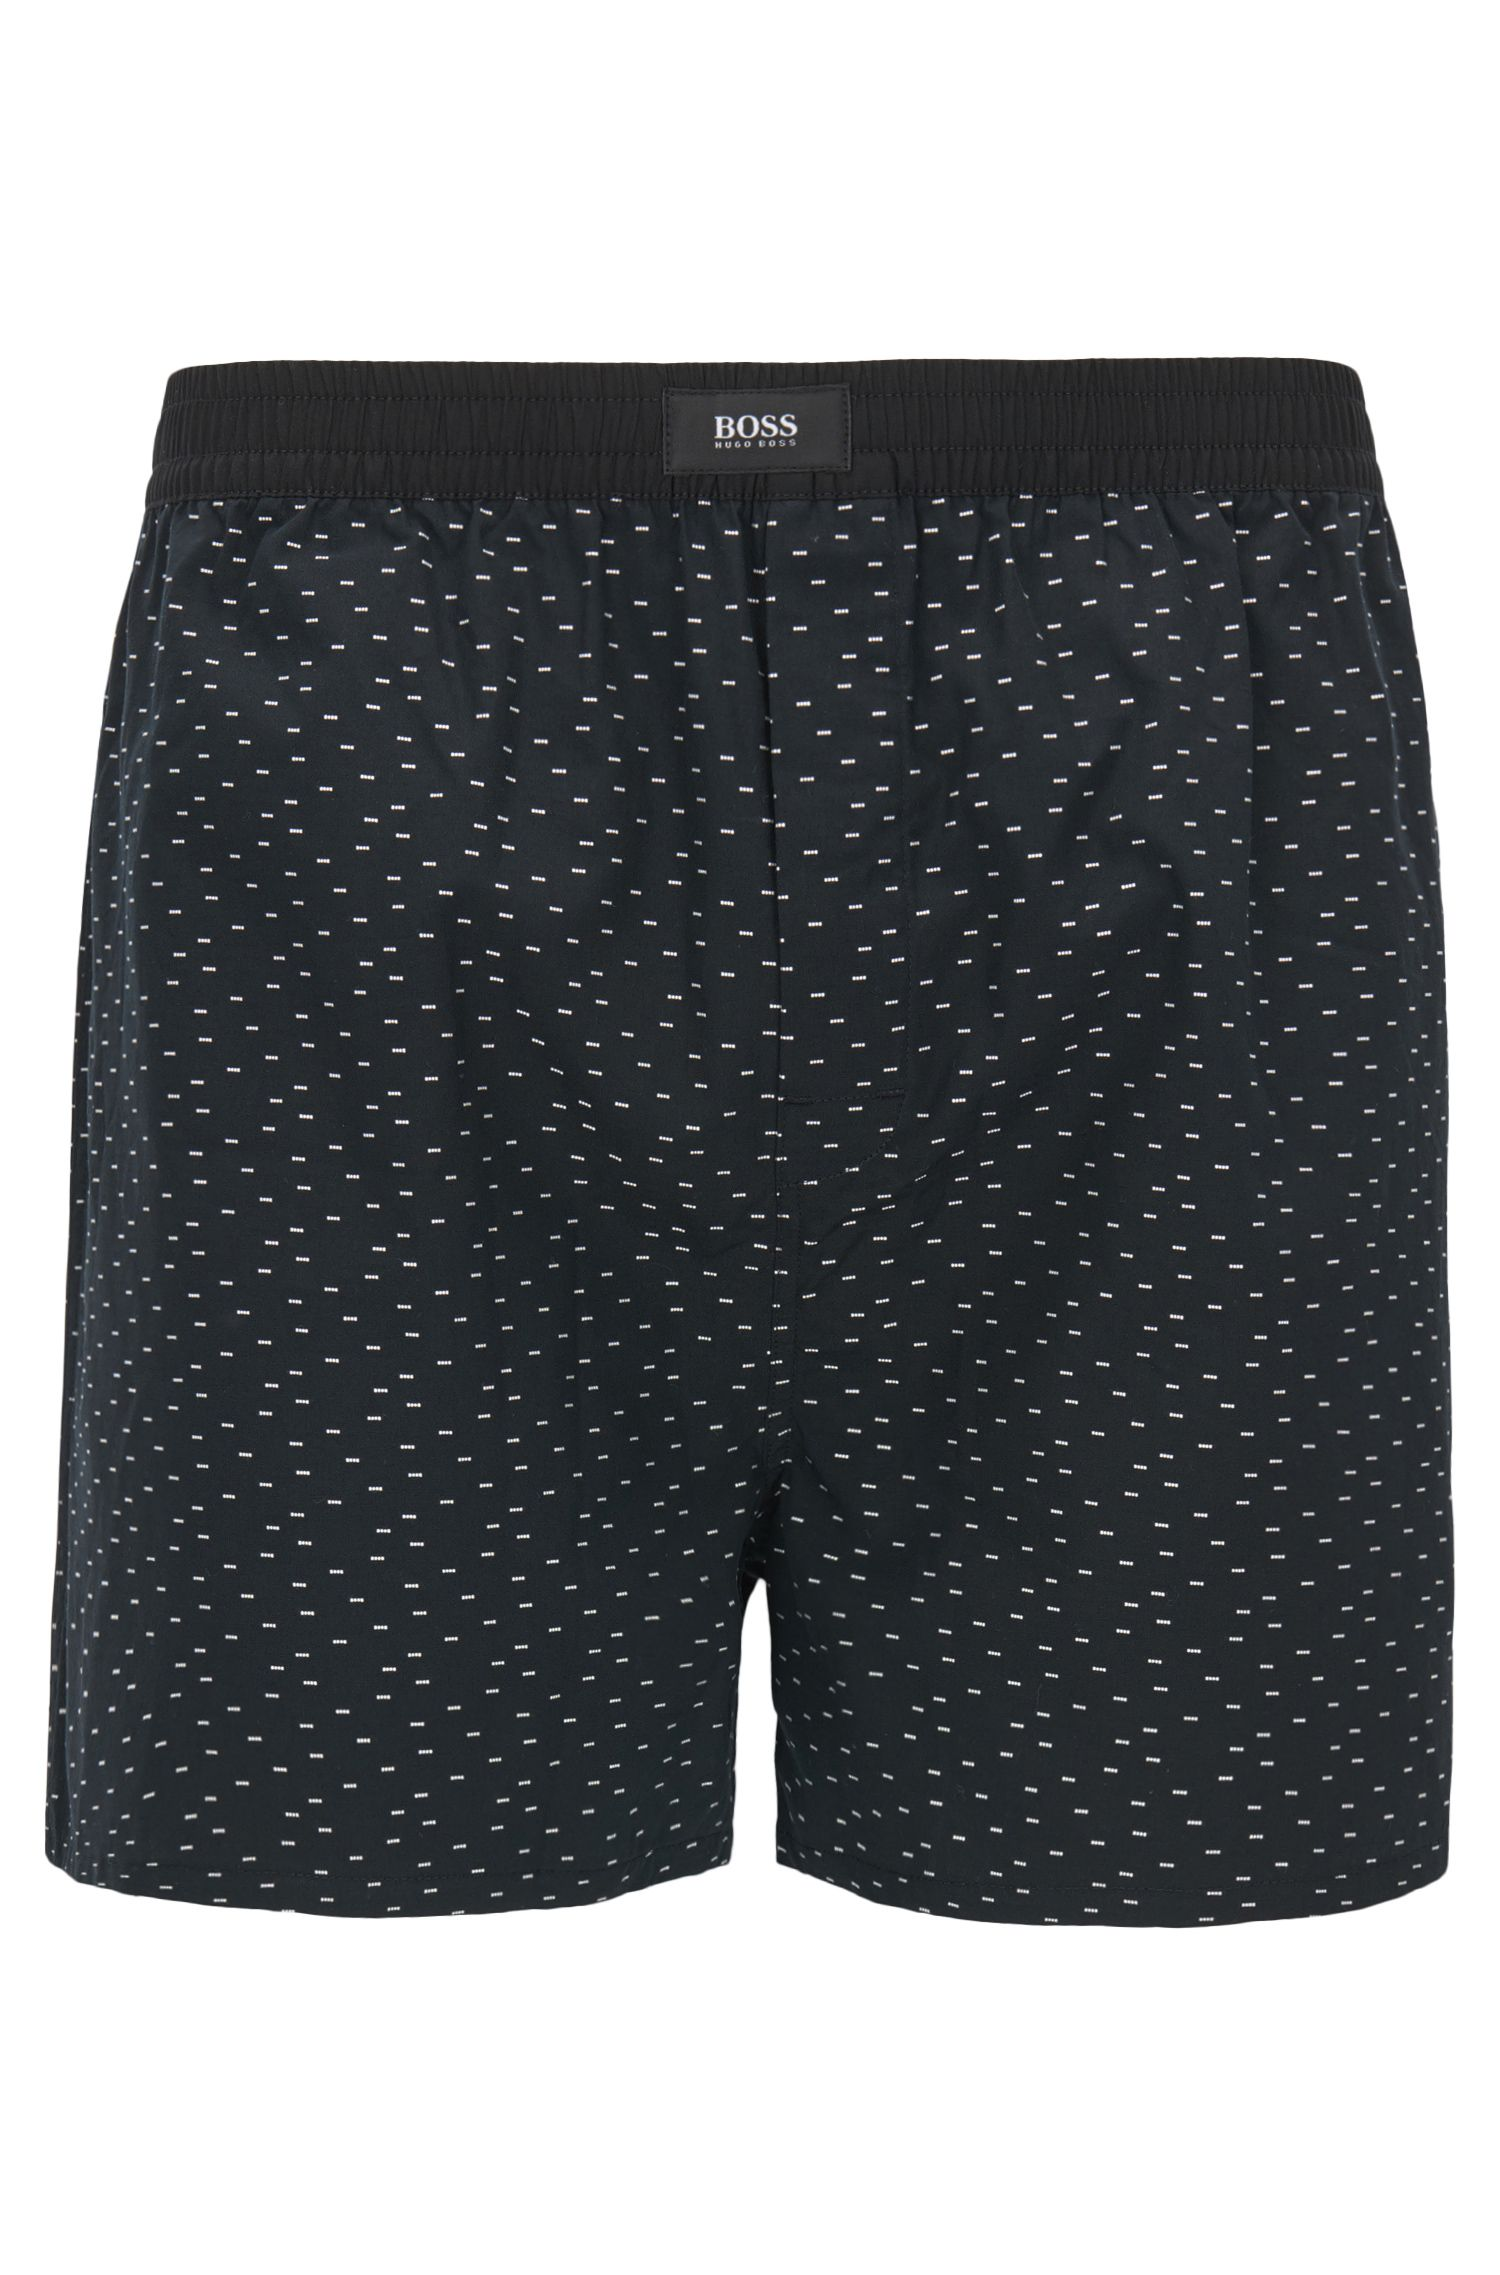 Cotton pyjama shorts with fil coupé pattern